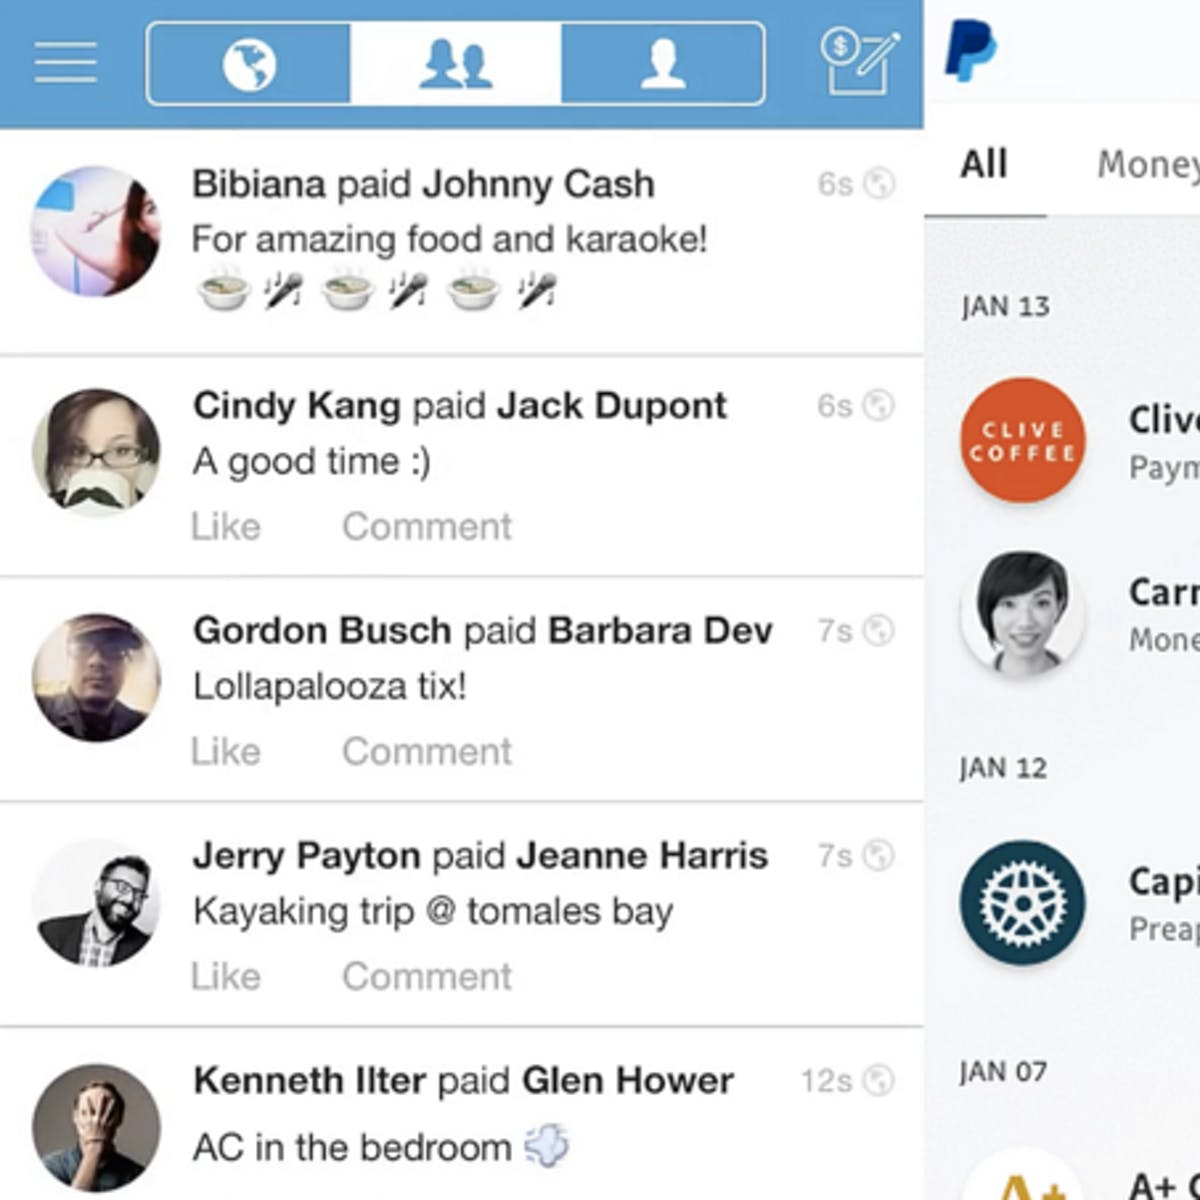 Should You Use Paypal or Venmo?   Inverse